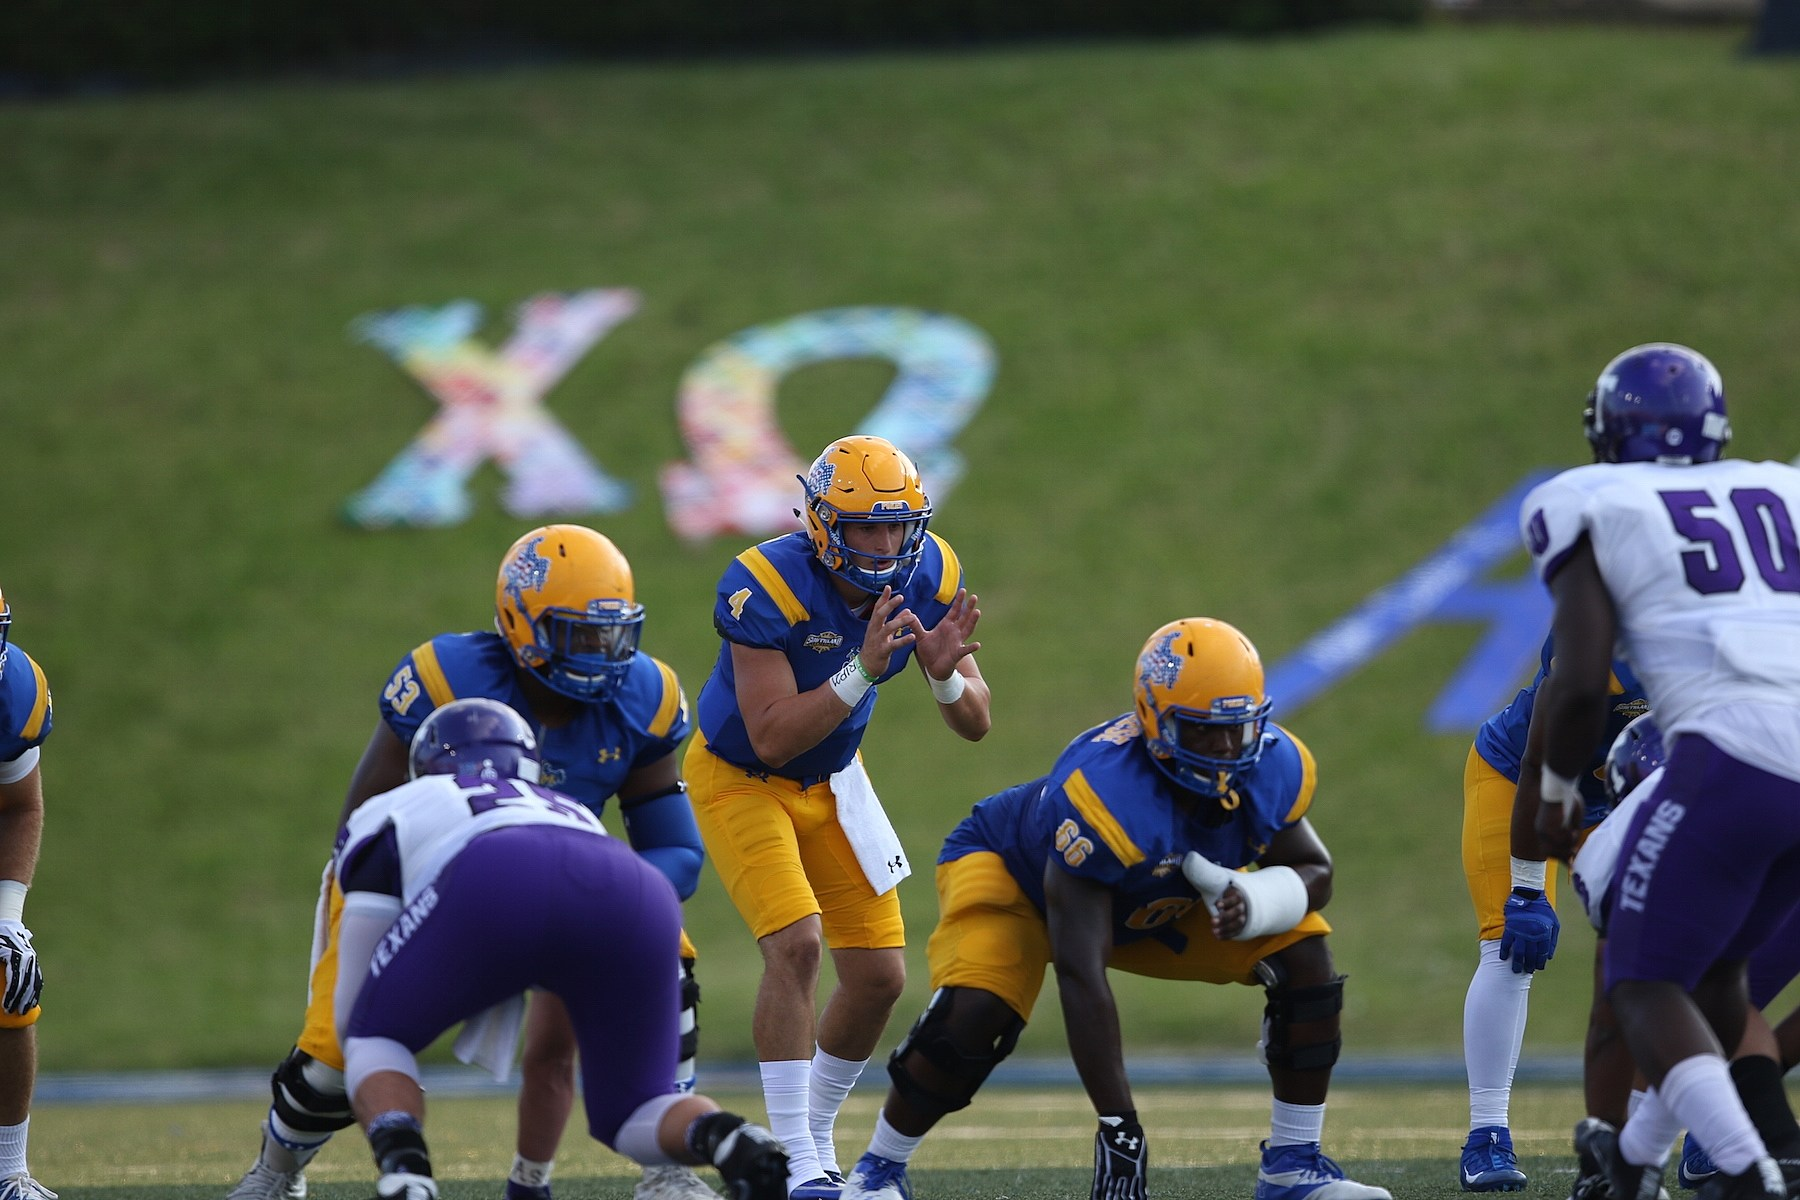 McNeese Football (photo Provided By Matt Bonnette)